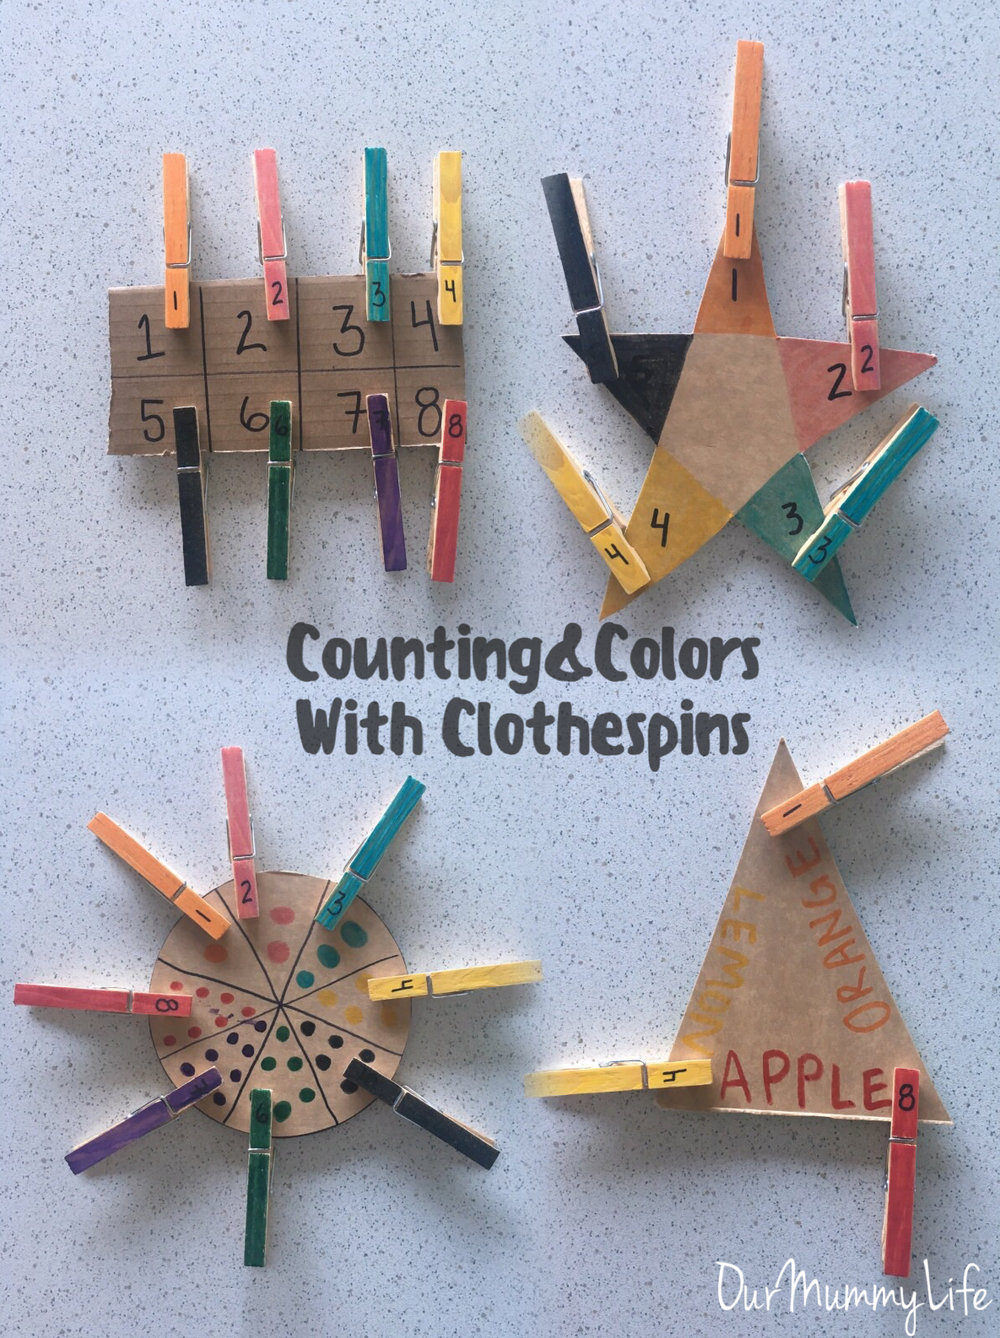 Counting & Colors with Clothespins   The use of clothespins is great for working on fine motor skills. Make it fun by adding in colors, shapes, and numbers. Try using discarded cardboard from cereal boxes or other containers.   Color and number several clothespins.           Then, cut out different cardboard shapes.  Use each shape for different ideas like matching colors and numbers, counting circles, or matching colors with fruit.